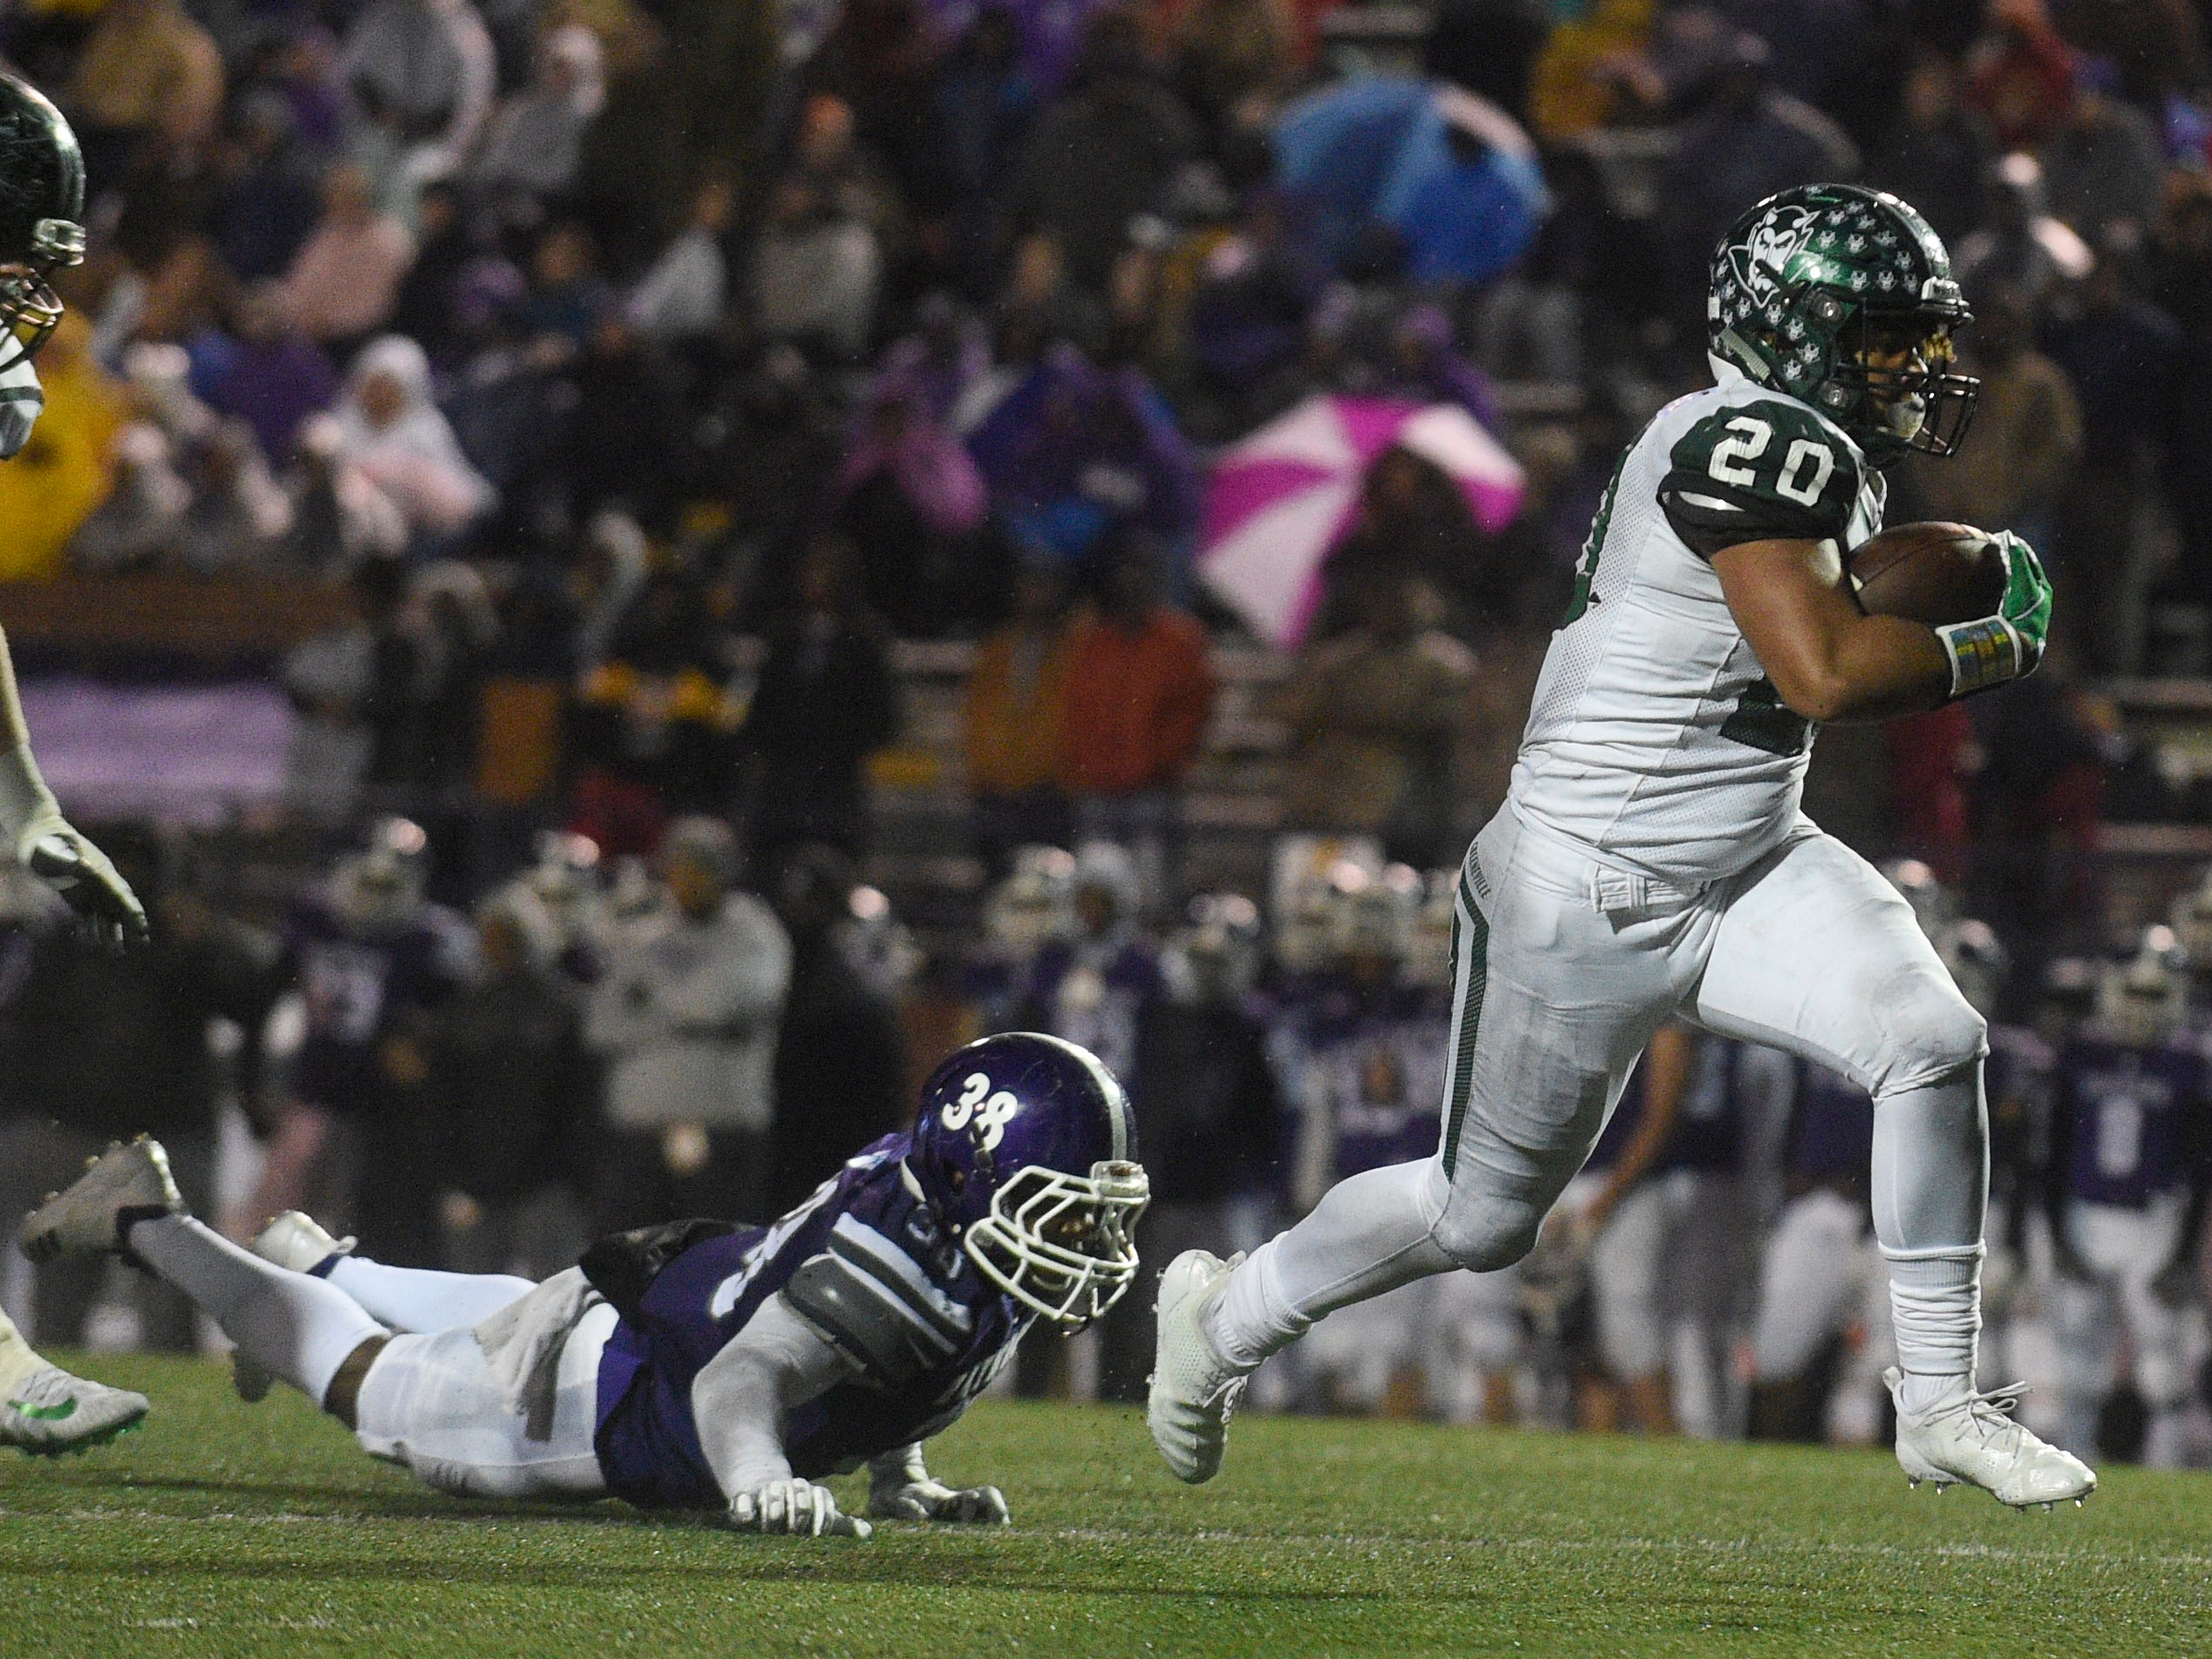 Greeneville's Jaevon Gillespie (20) heads for the endzone for a second-half touchdown during the Class 4A BlueCross Bowl state championship at Tennessee Tech's Tucker Stadium in Cookeville, Tenn., on Thursday, Nov. 29, 2018.